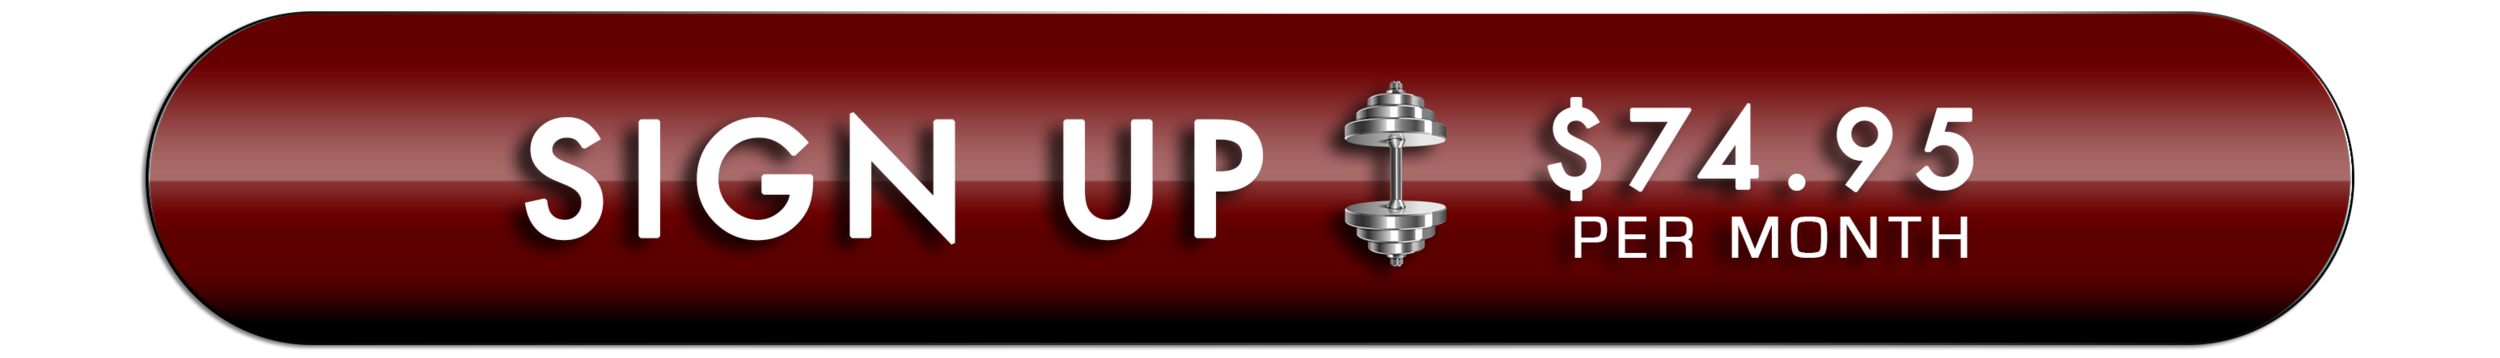 Sign Up Button - Training Redefined (Red - Larger).png